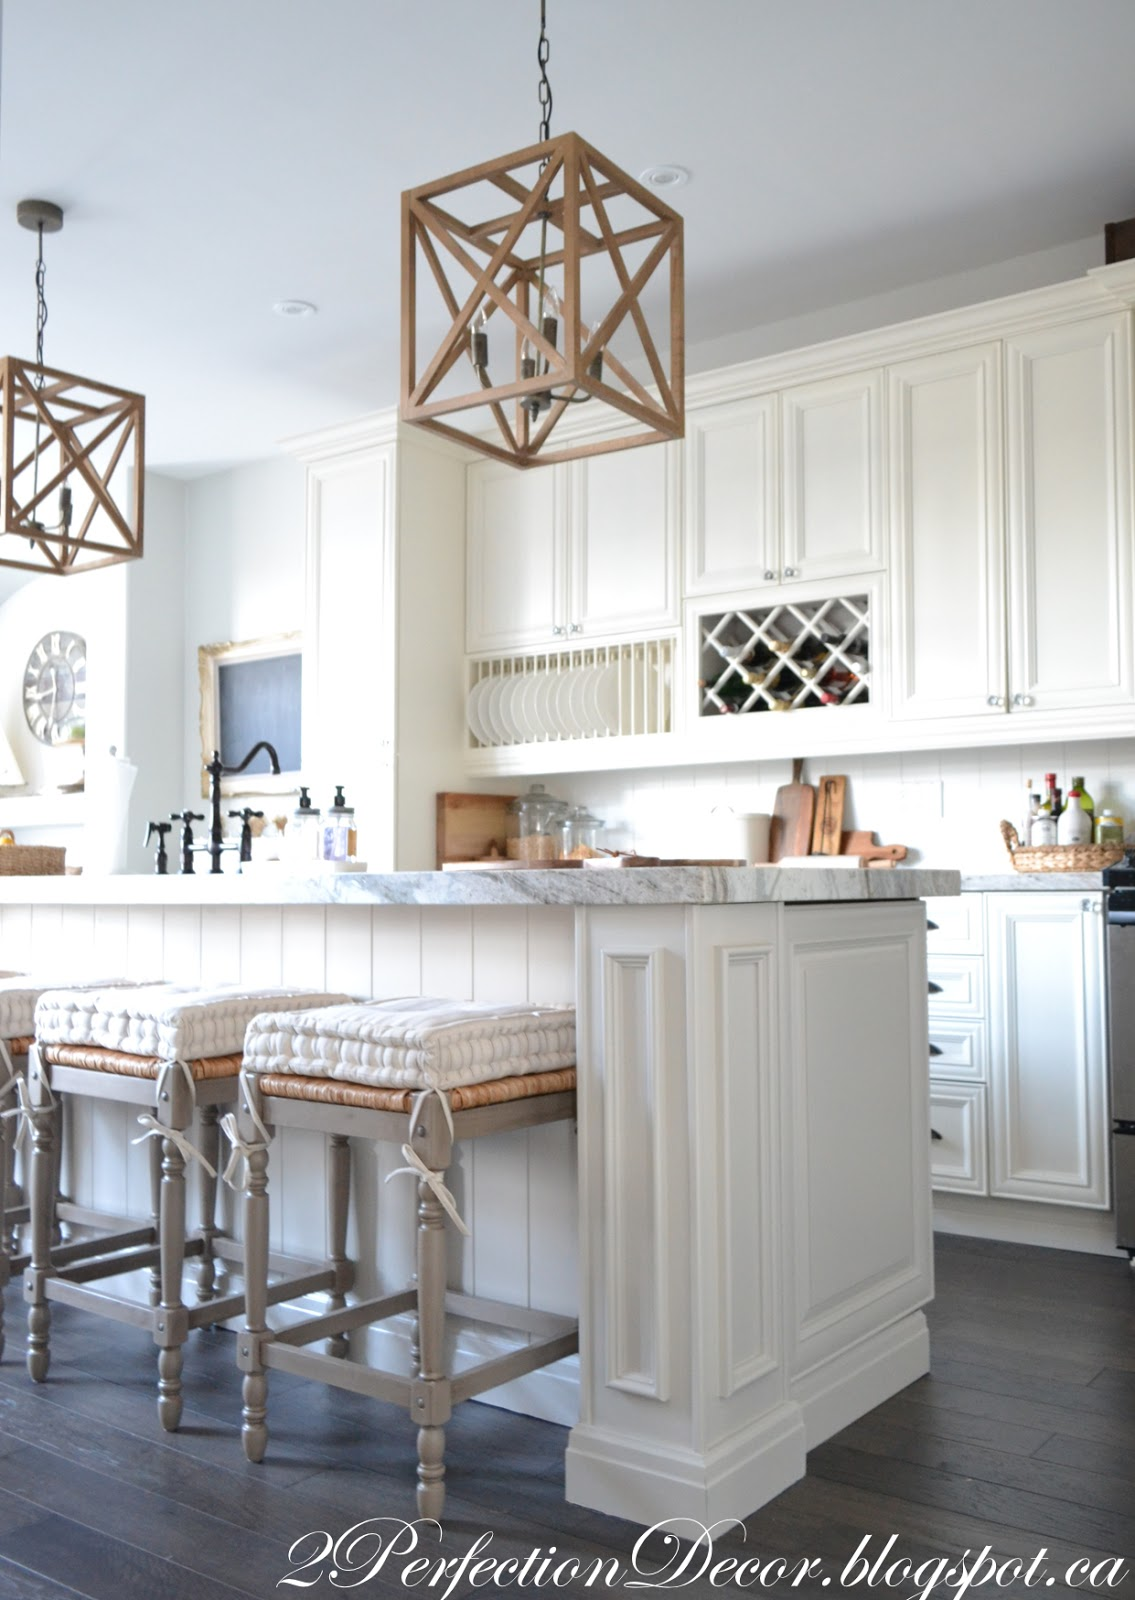 2Perfection Decor: Adding Wood Planks to our Kitchen Island